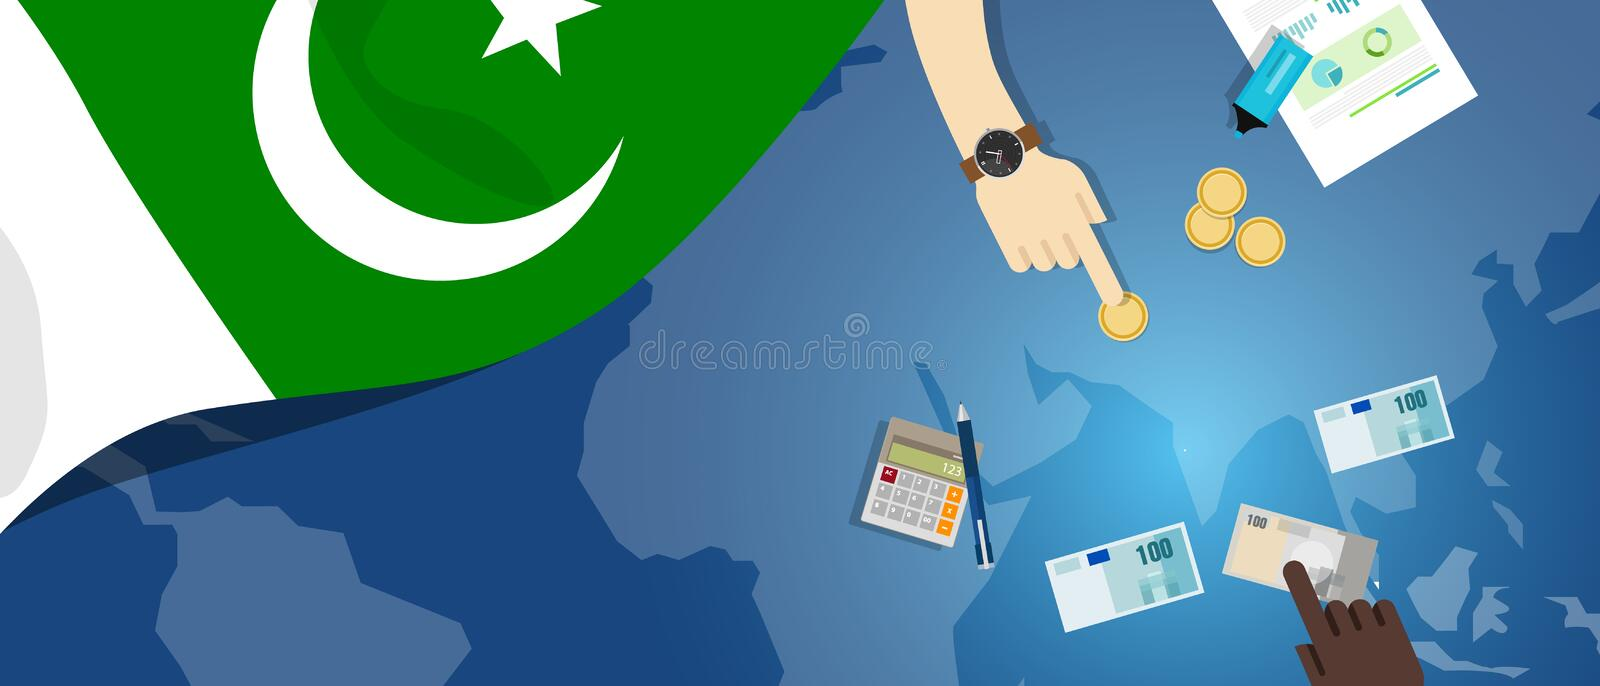 Pakistan fiscal money trade concept illustration of financial banking budget with flag map and currency. Pakistan economy fiscal money trade concept illustration royalty free illustration